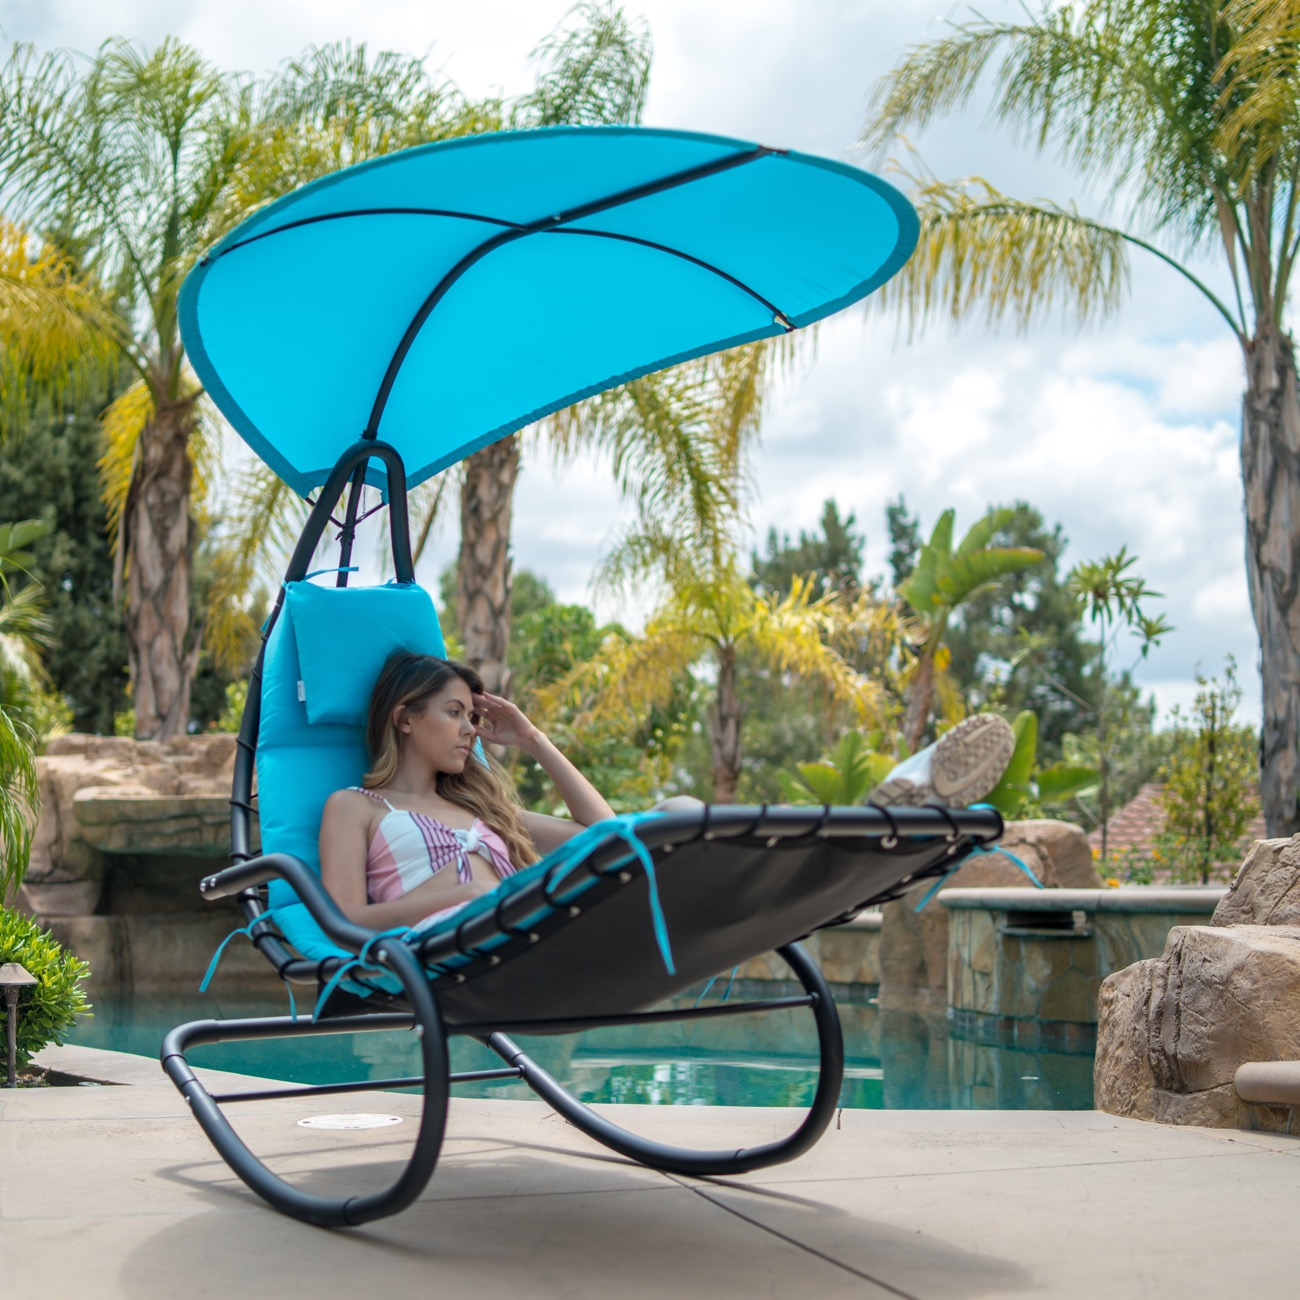 Outdoor Rocking Chaise Lounge Chair Cushion w/Canopy Shade ...